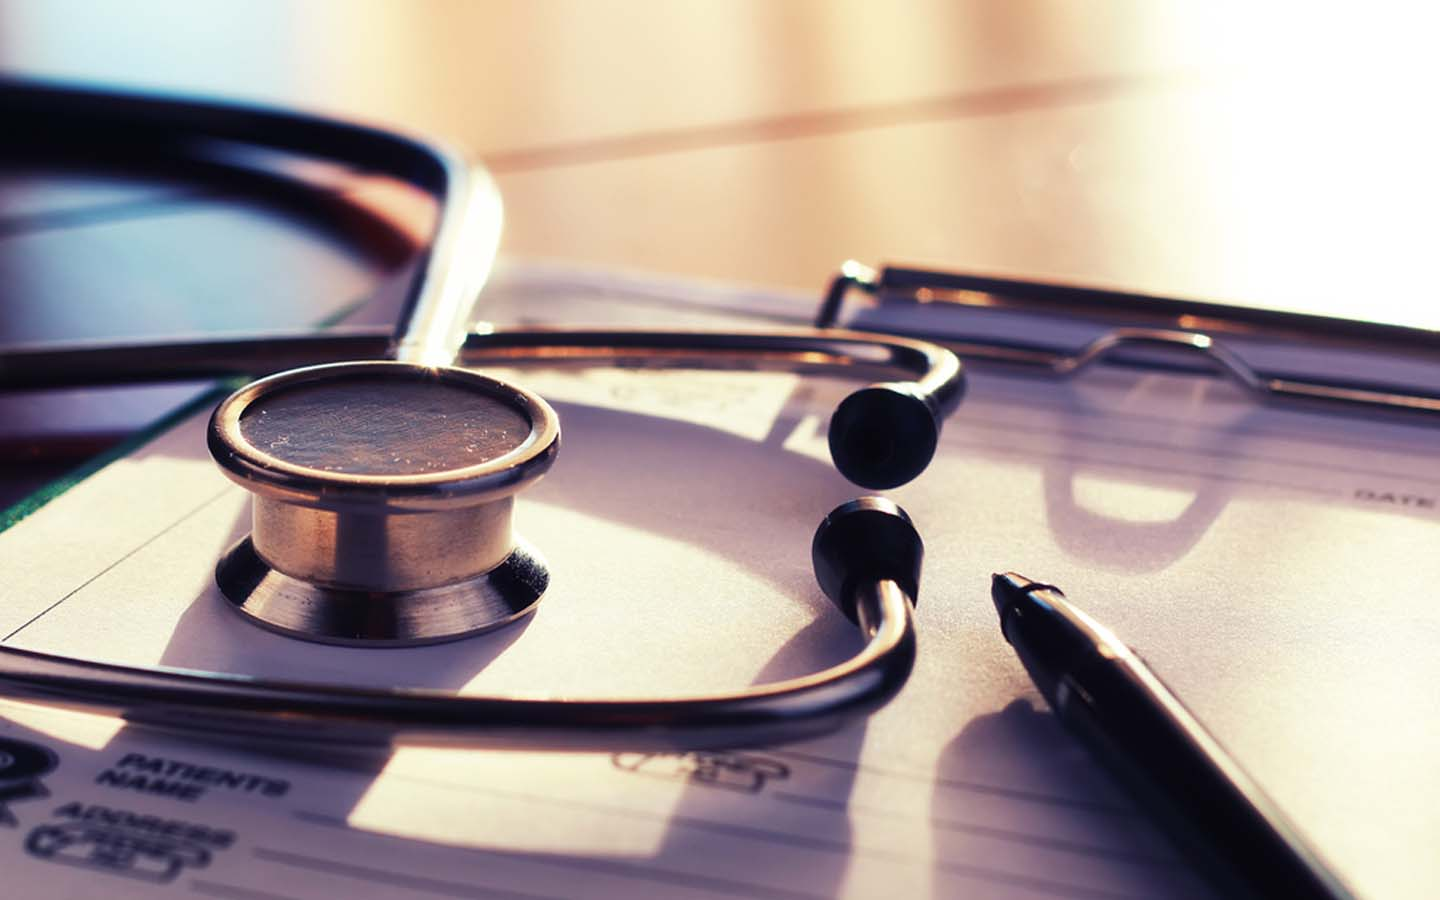 Stethoscope and health insurance documents